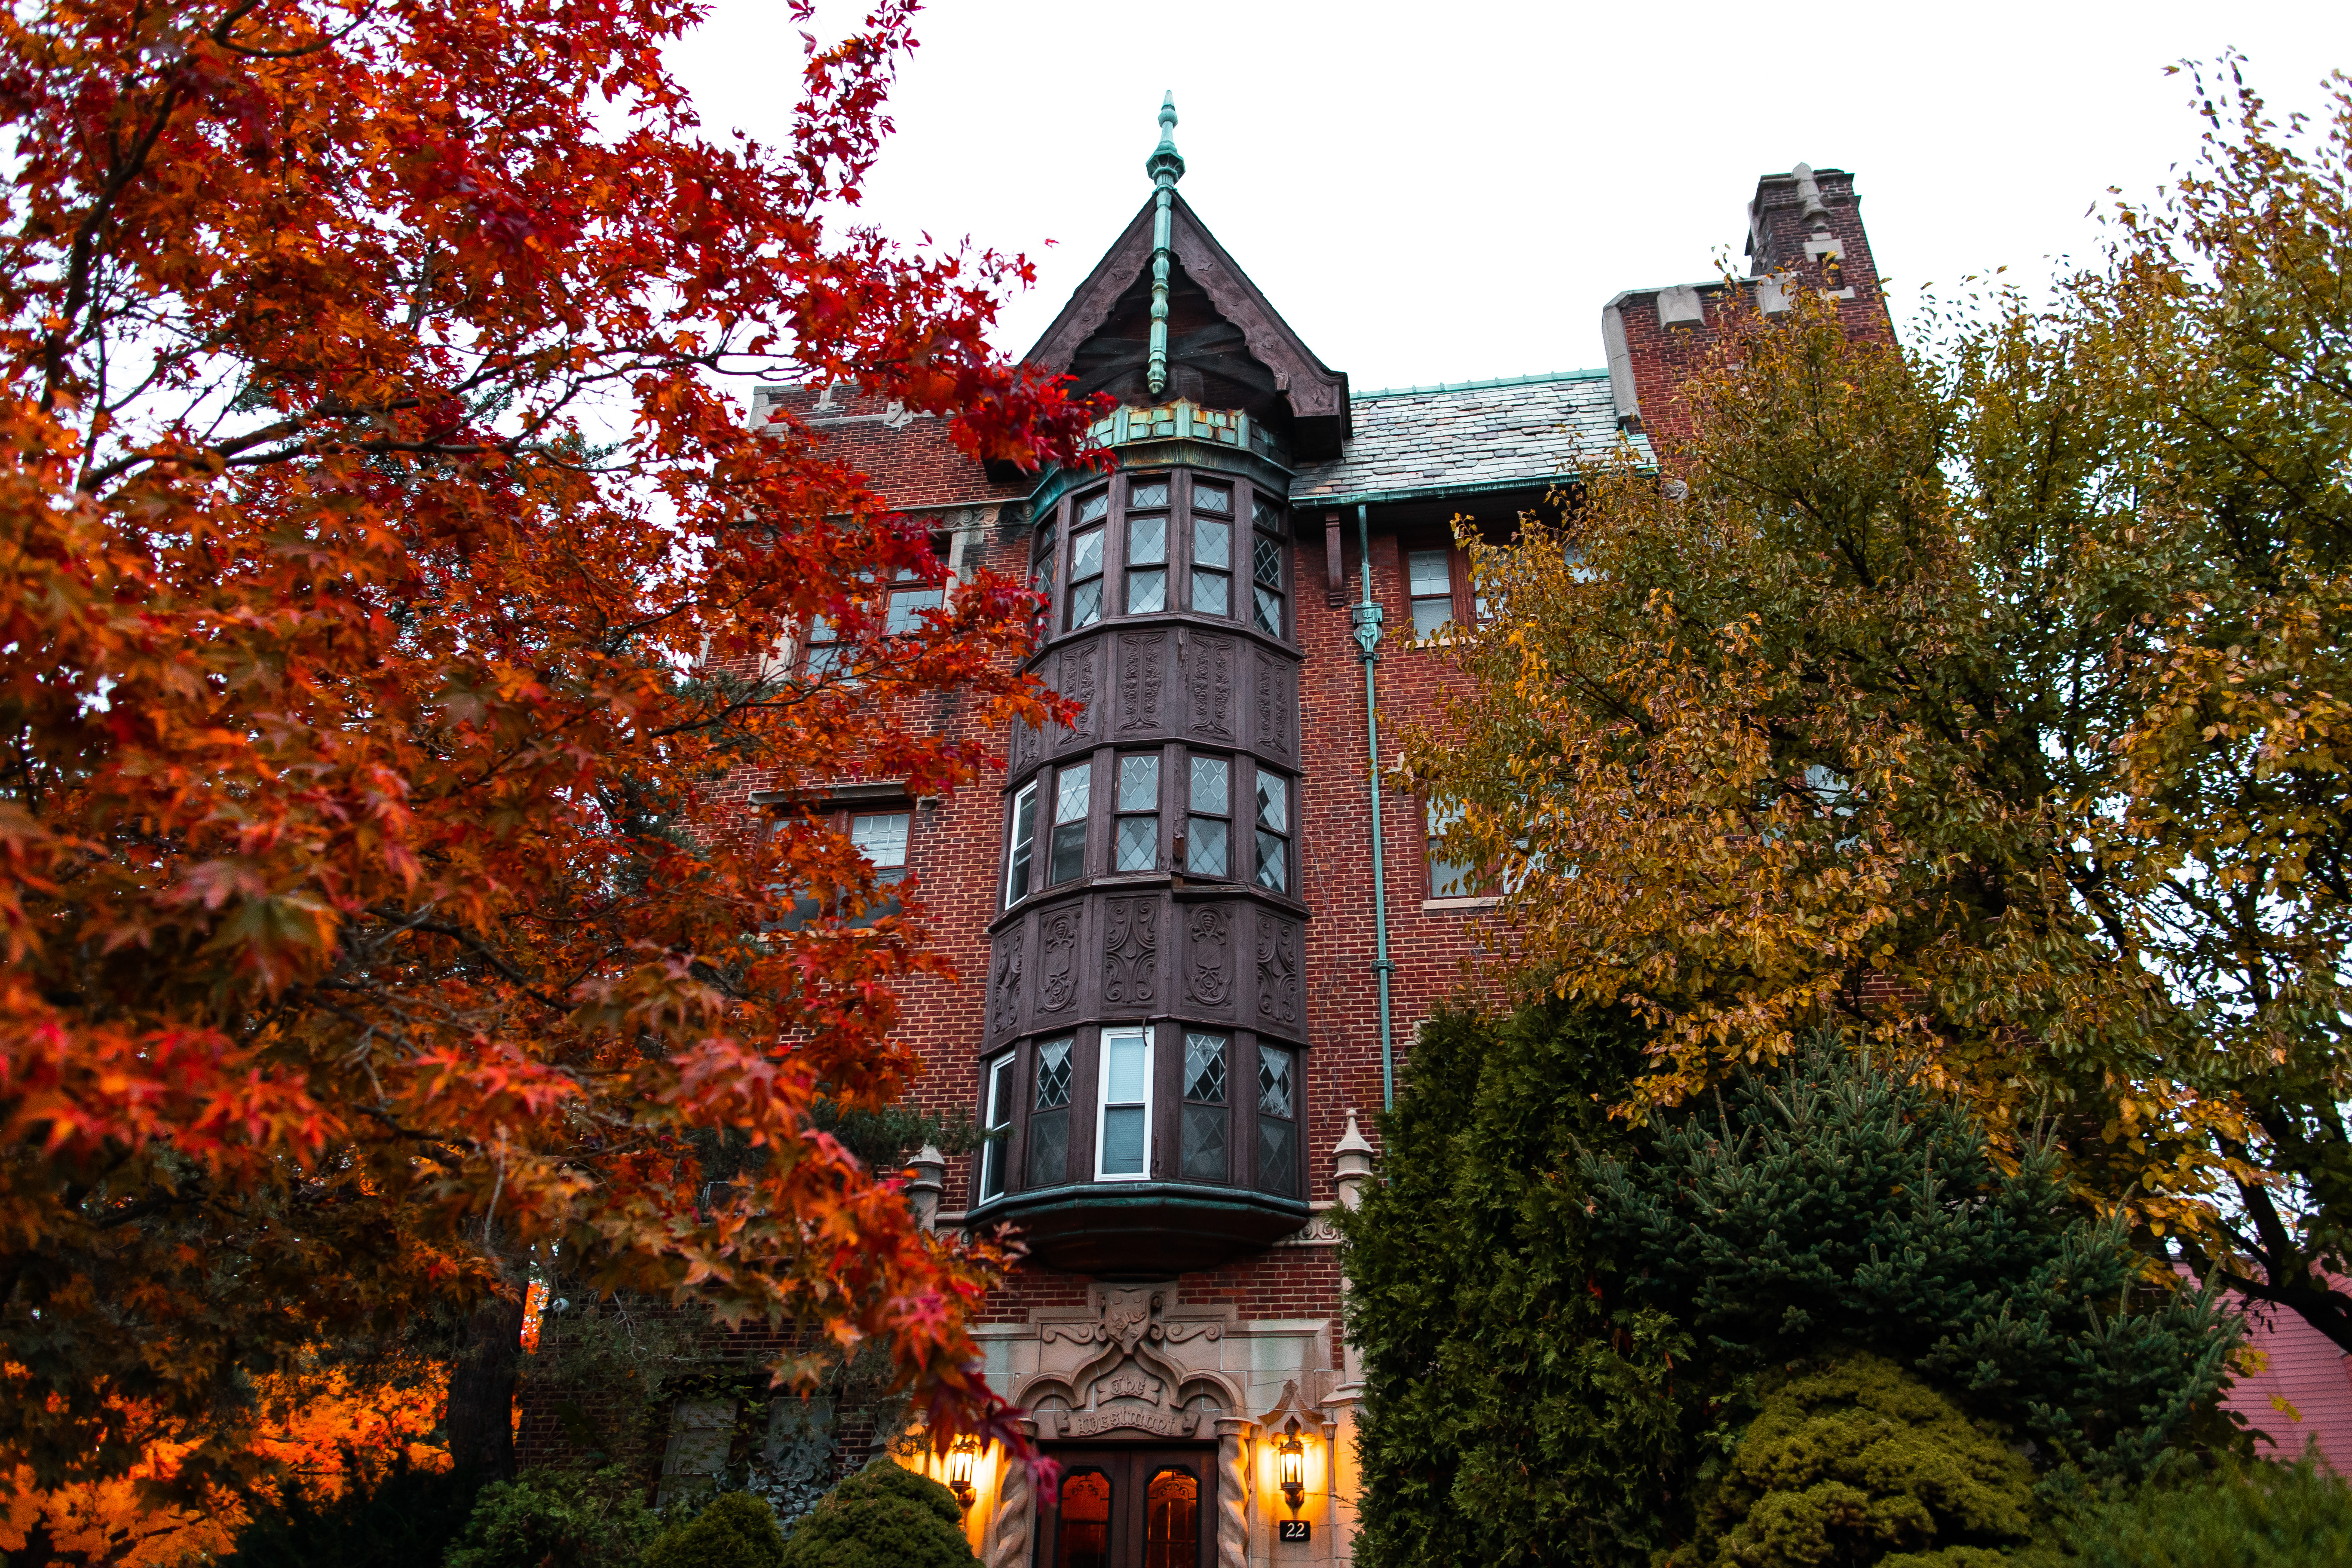 An historic apartment building surrounded by a colorful array of trees.